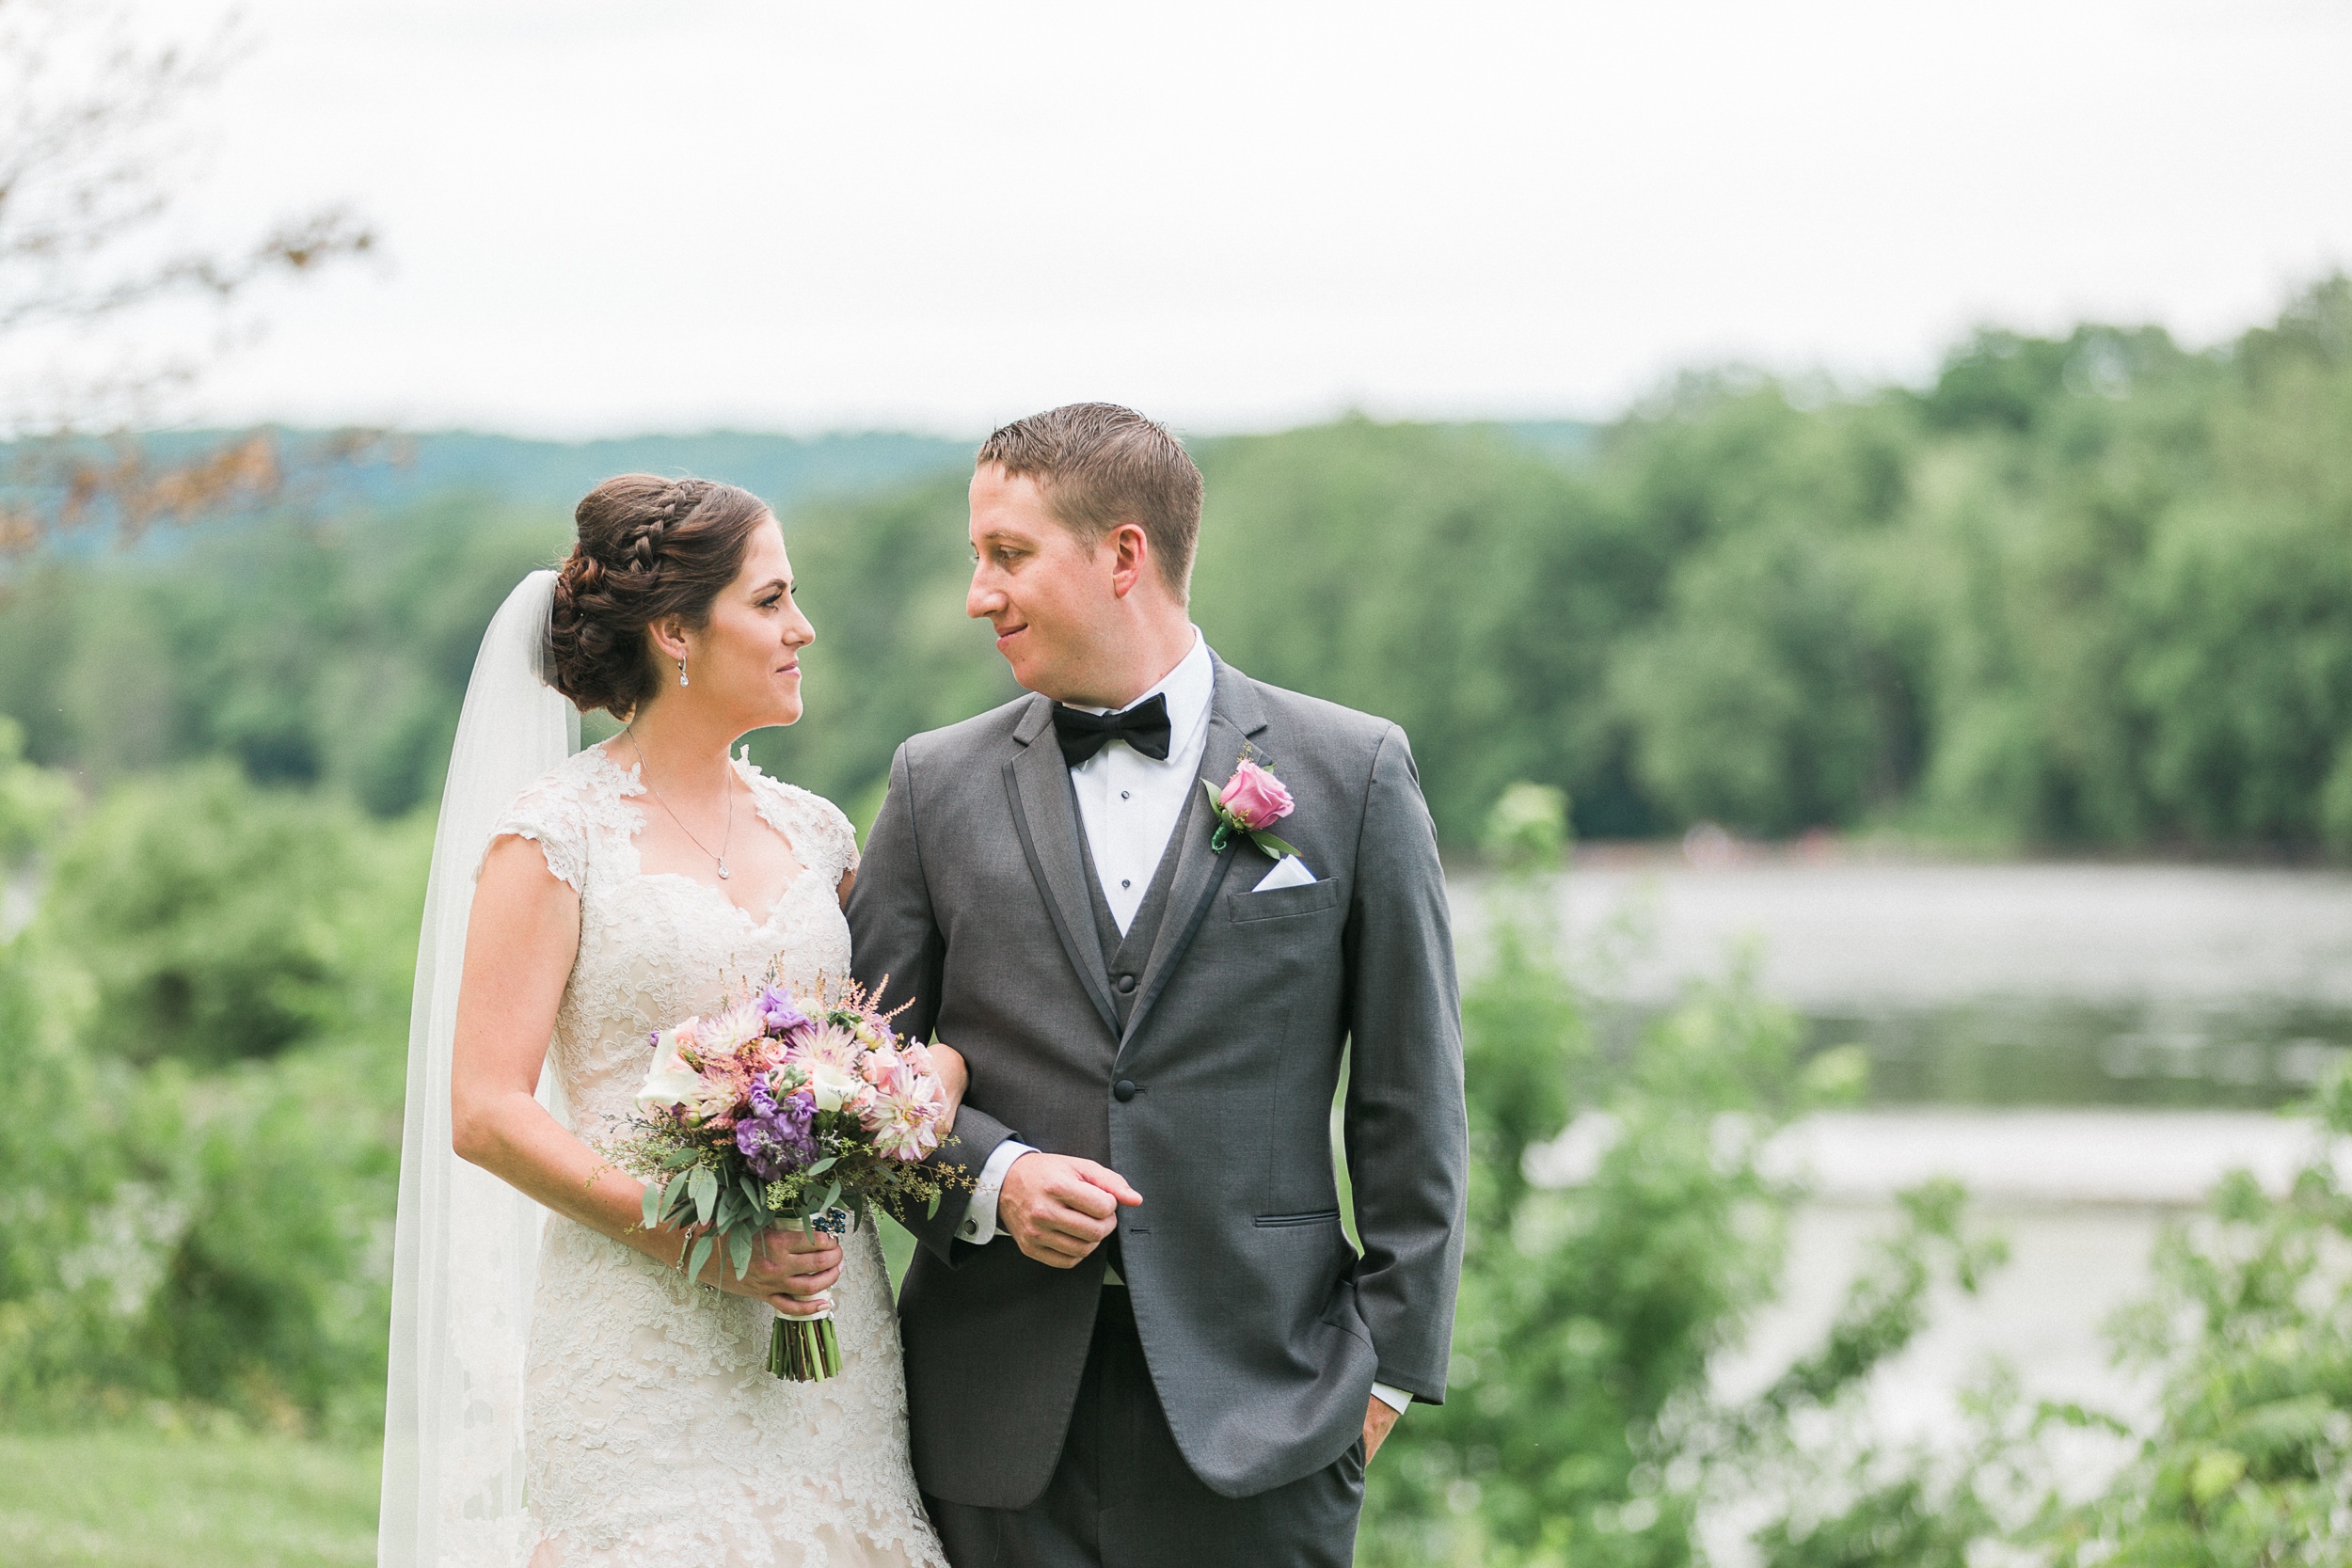 Washington Crossing PA Wedding WRHPhotography-25.jpg